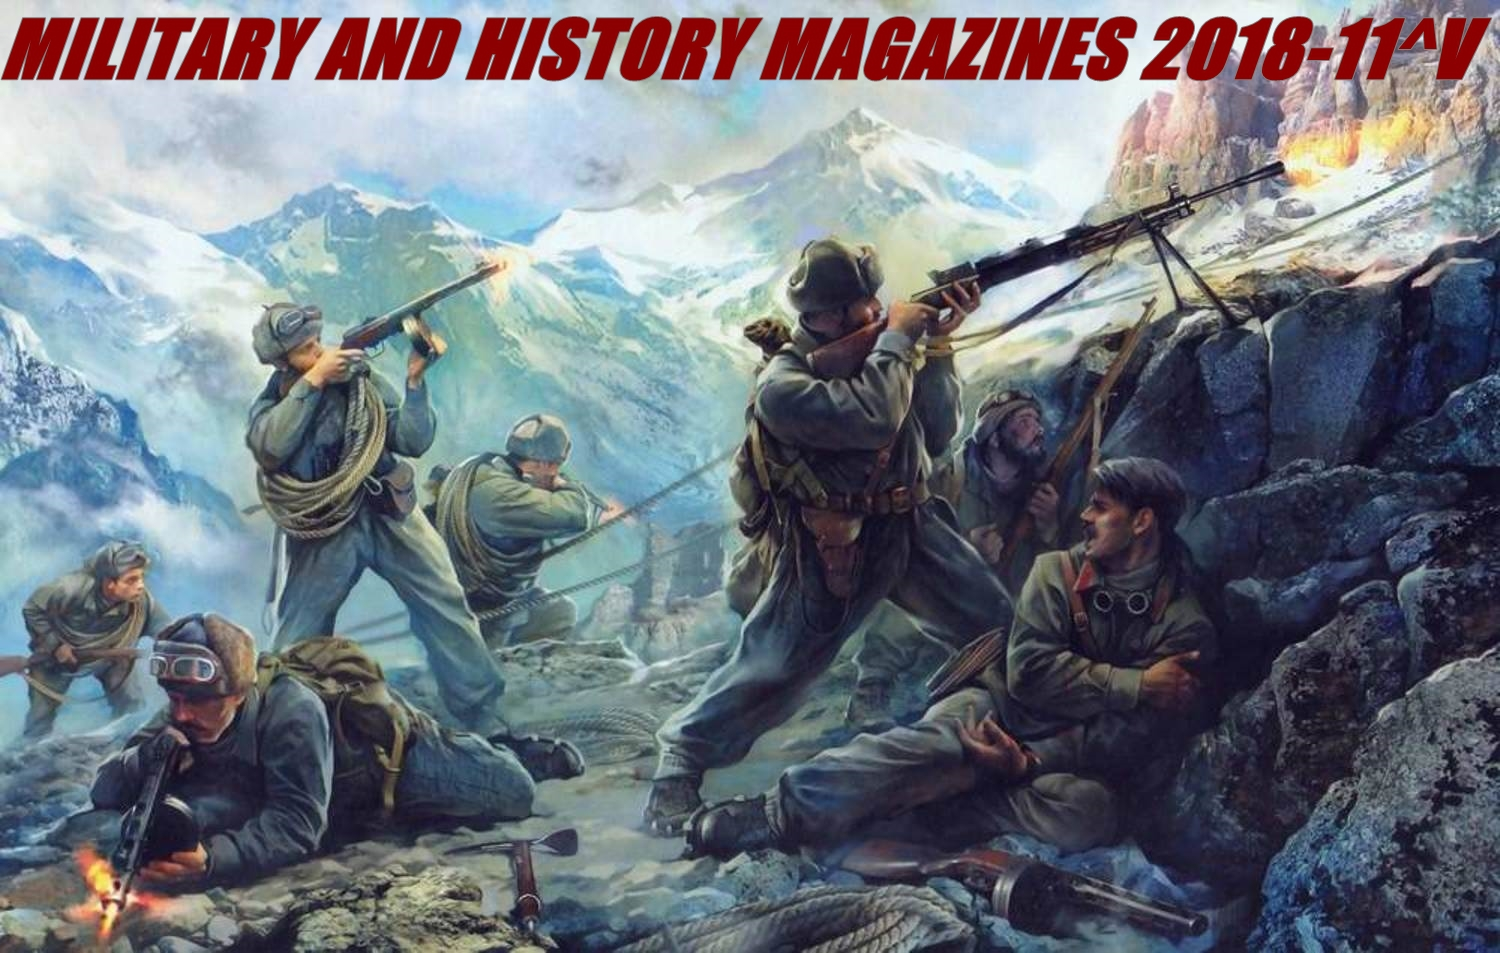 Military and History Magazines 2018-11